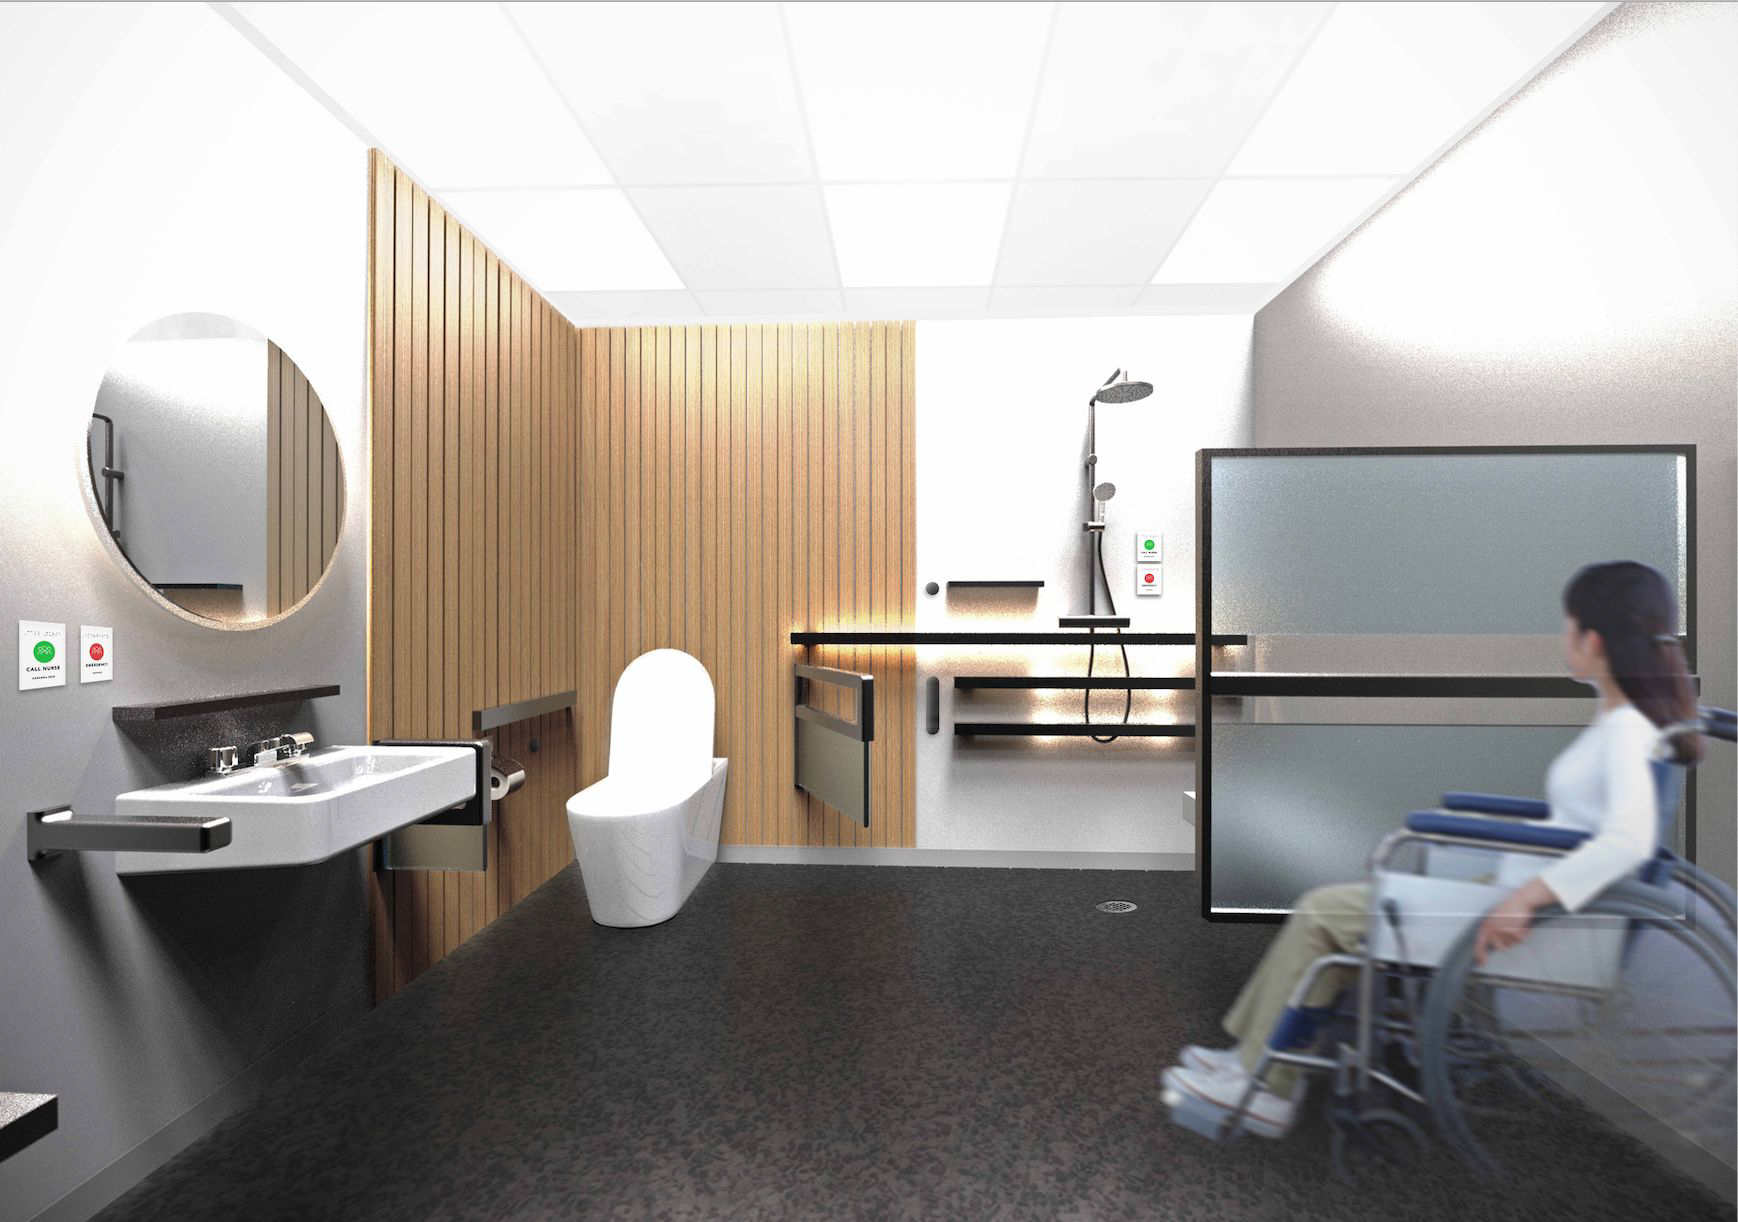 Elective surgery ward bathroom by Rebecca McLean and Sam How